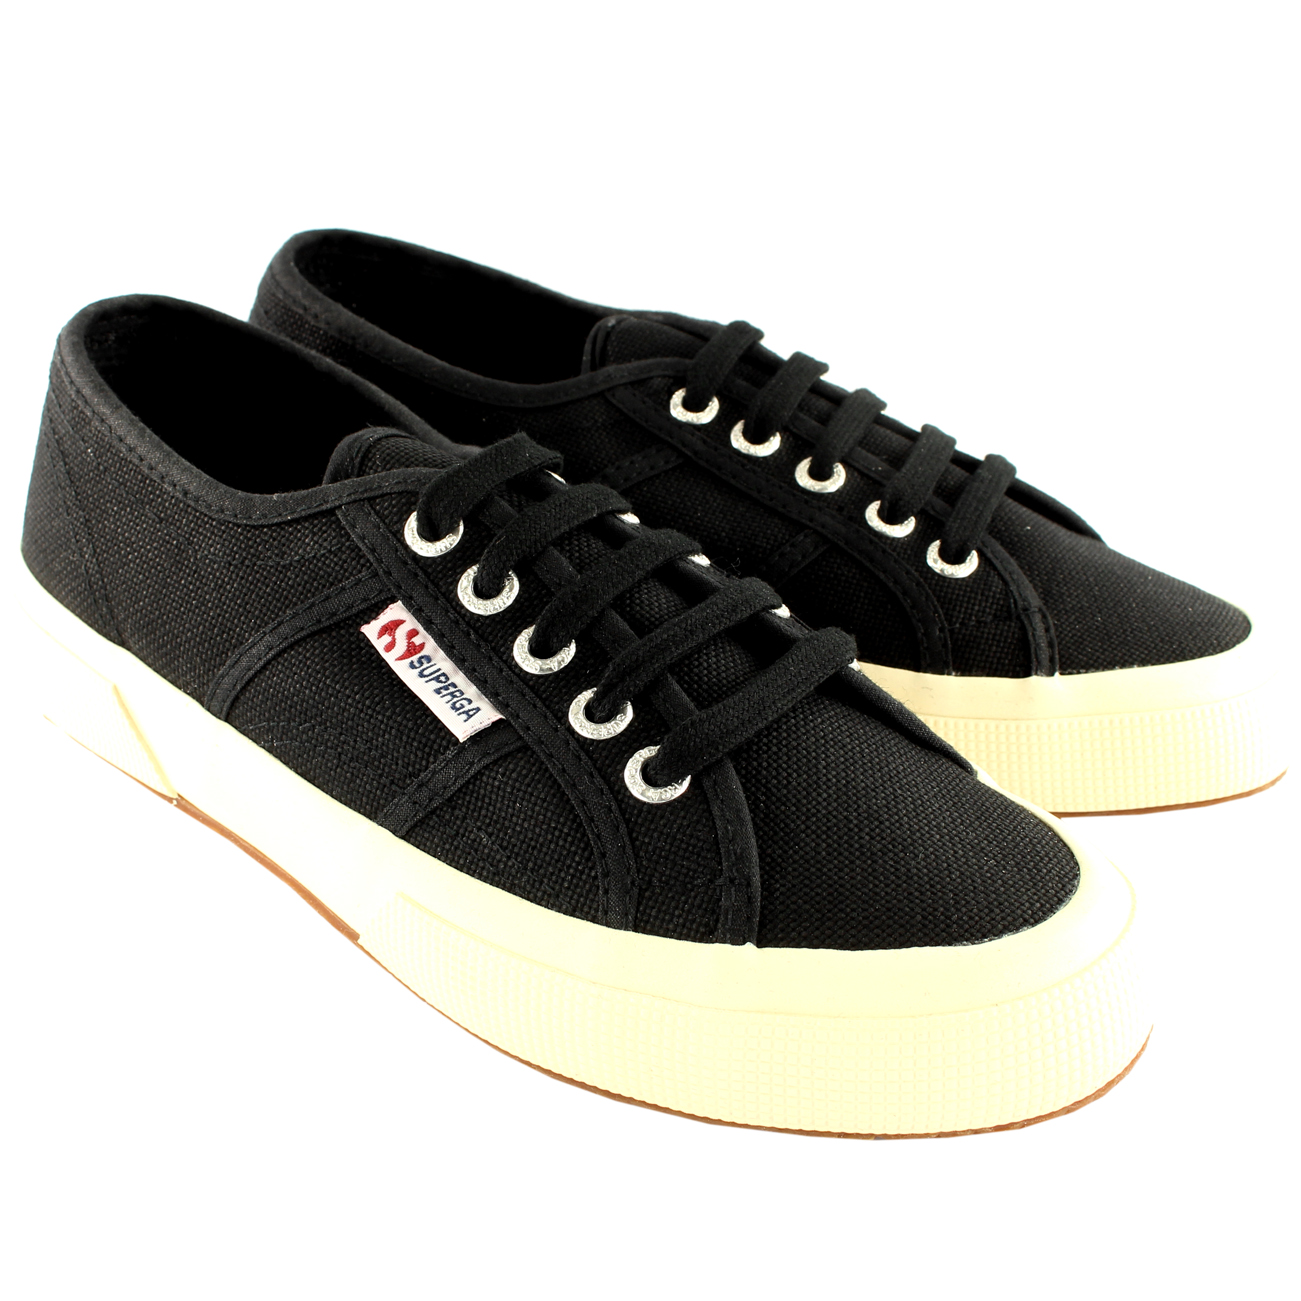 Mens Superga 2750 Cotu Classic Plimsoll Lace Up Canvas Casual Trainers All Sizes